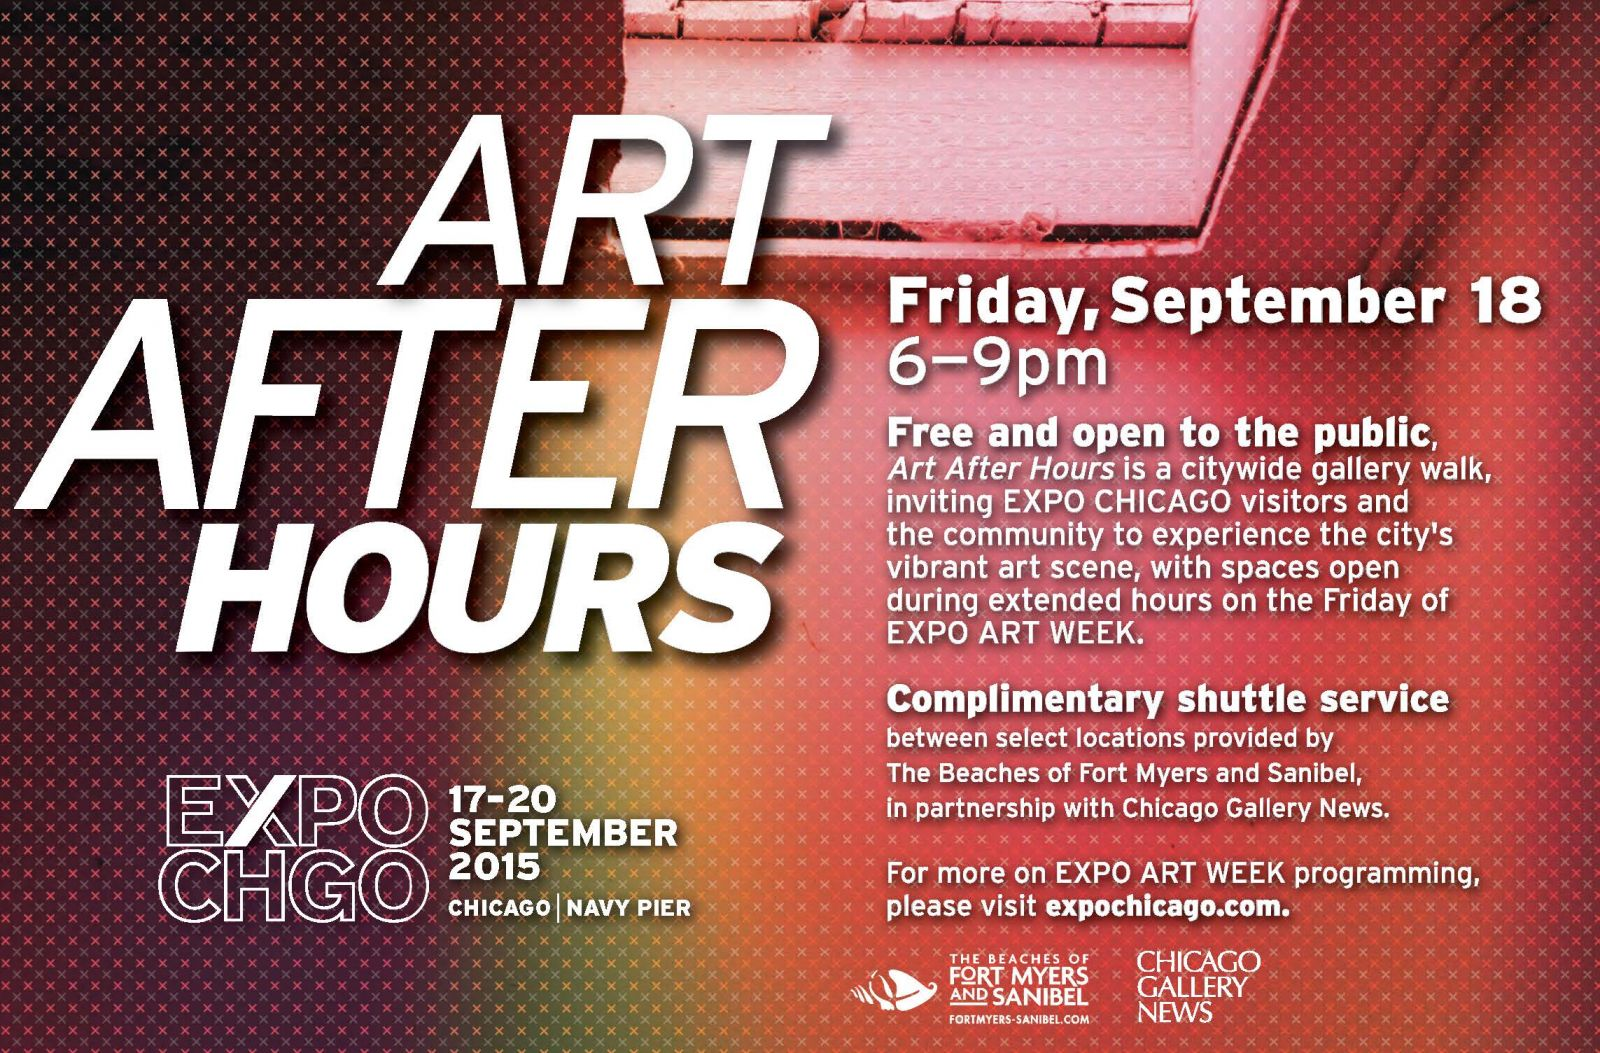 EXPO, Art After Hours